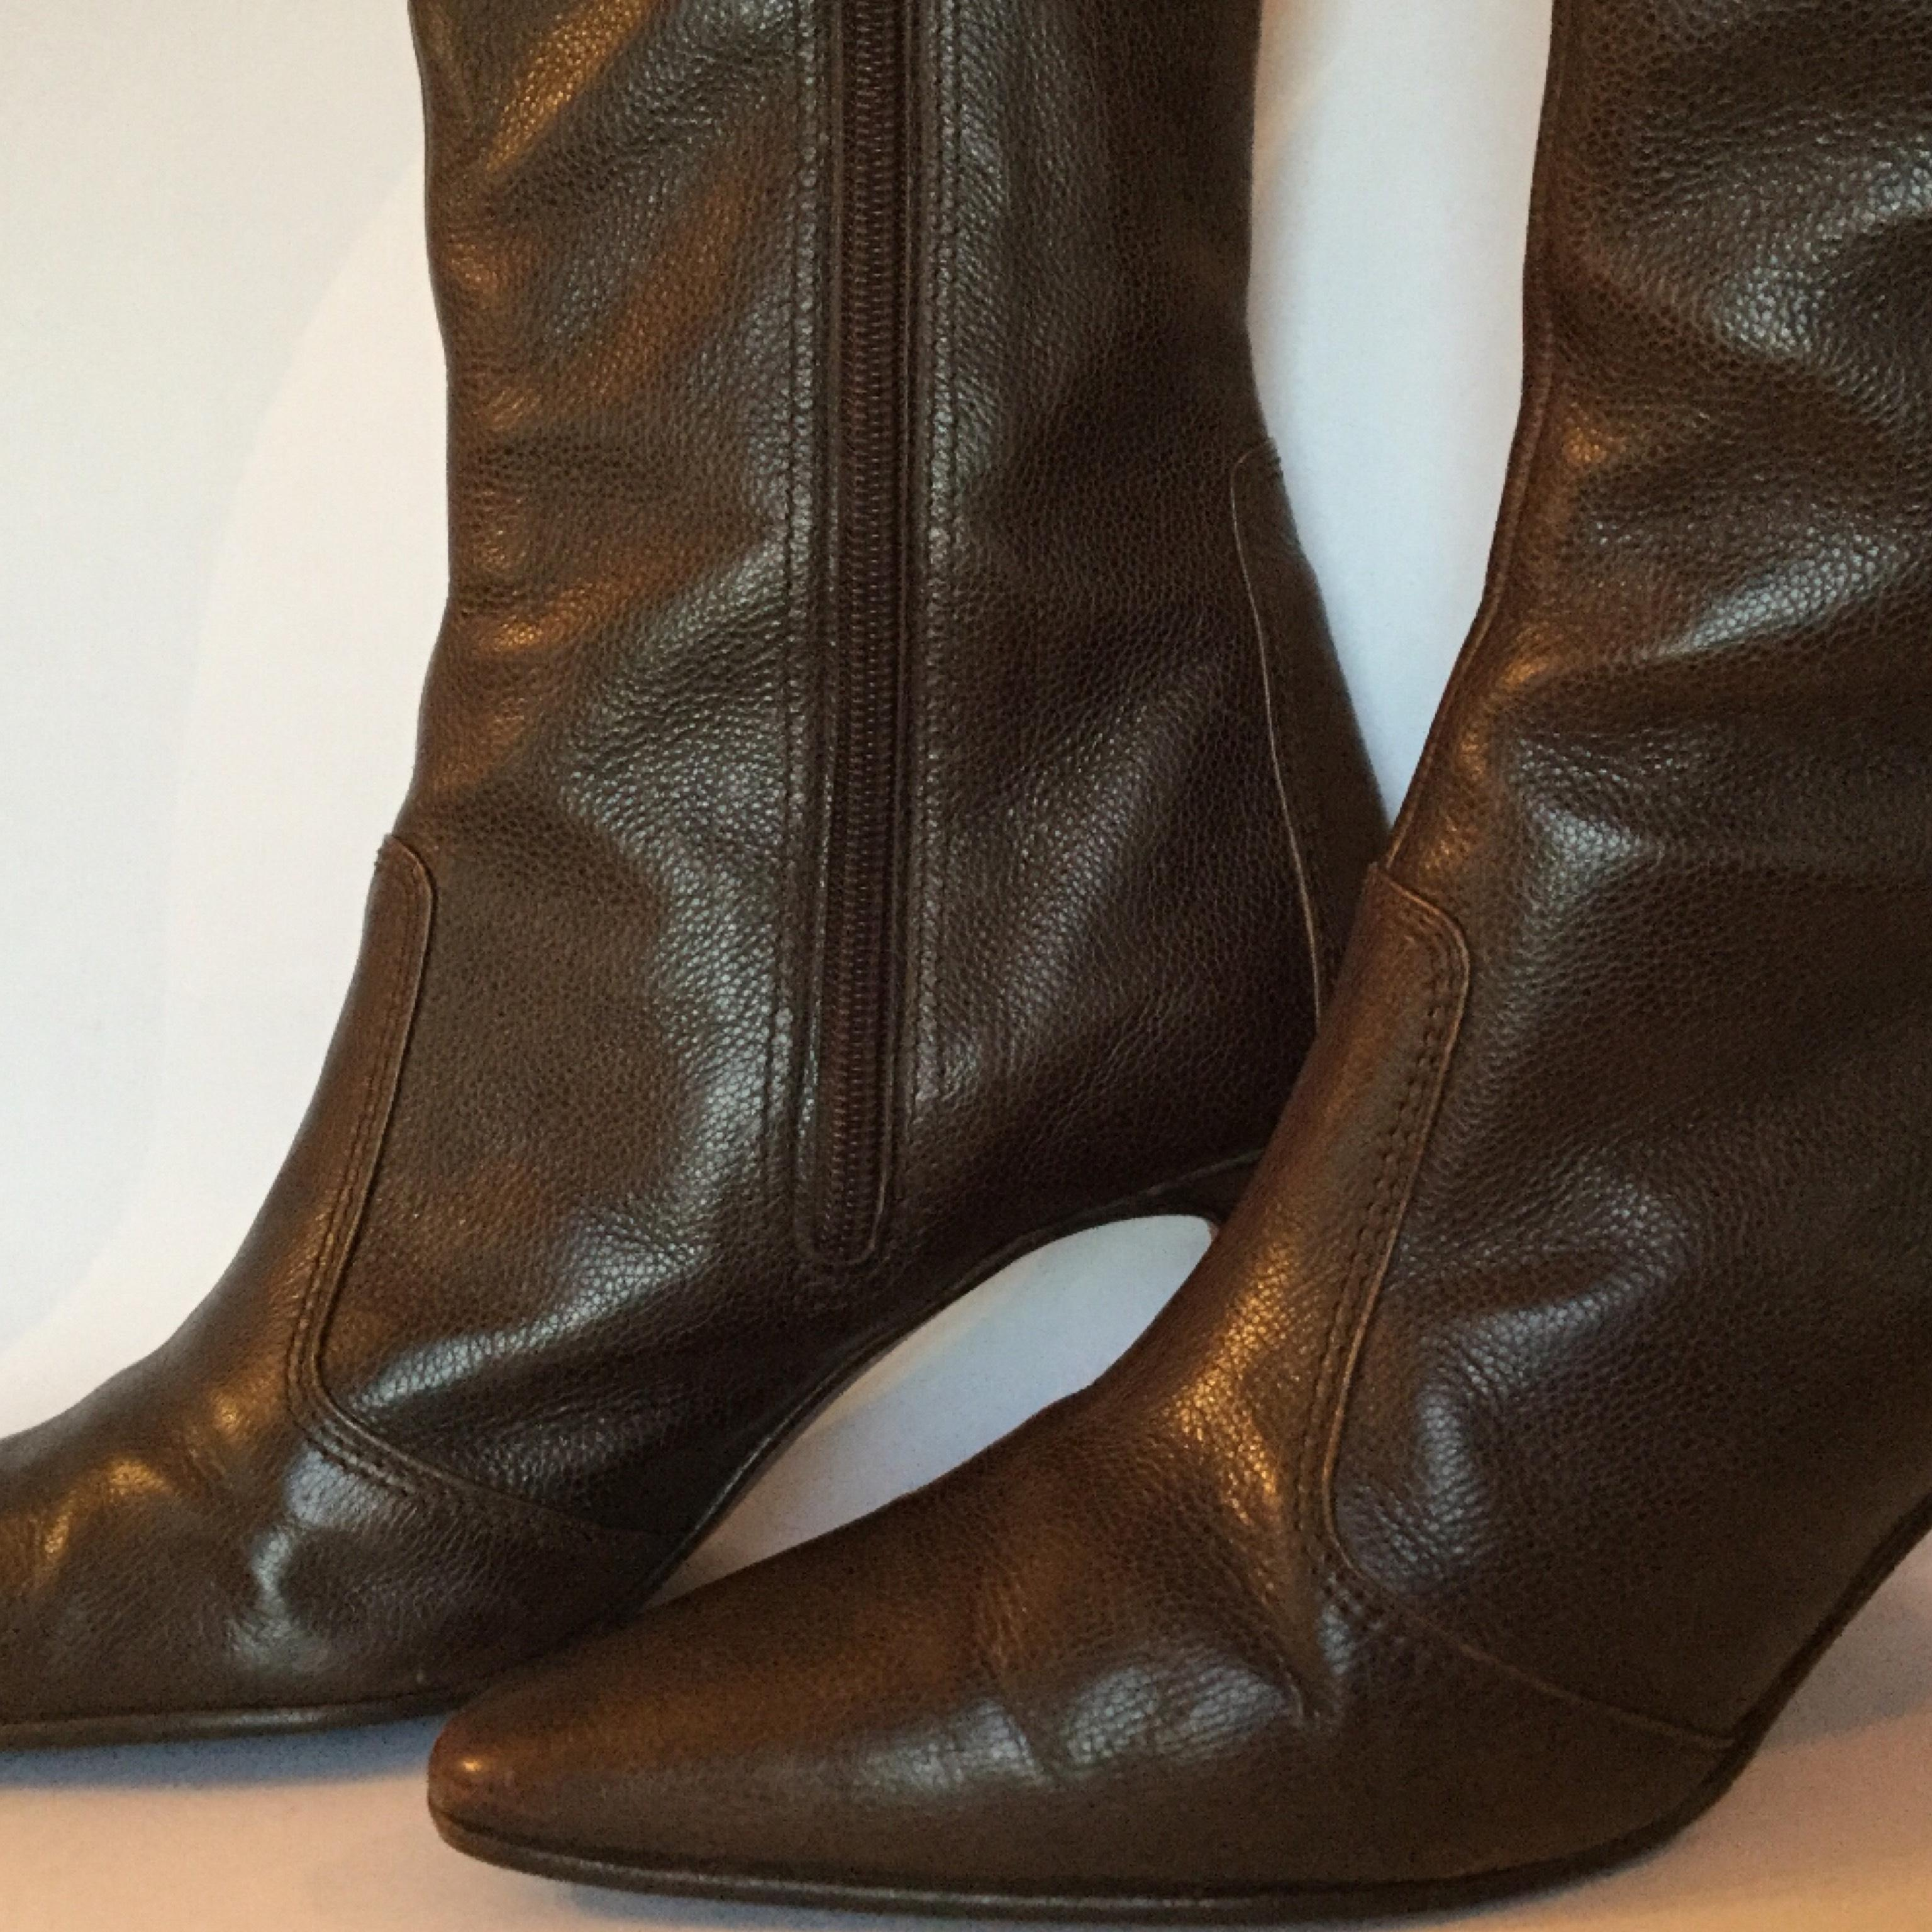 Manolo Blahnik Pointed-Toe Mid-Calf Boots sale low cost collections cheap online visa payment online rdyytuJQ